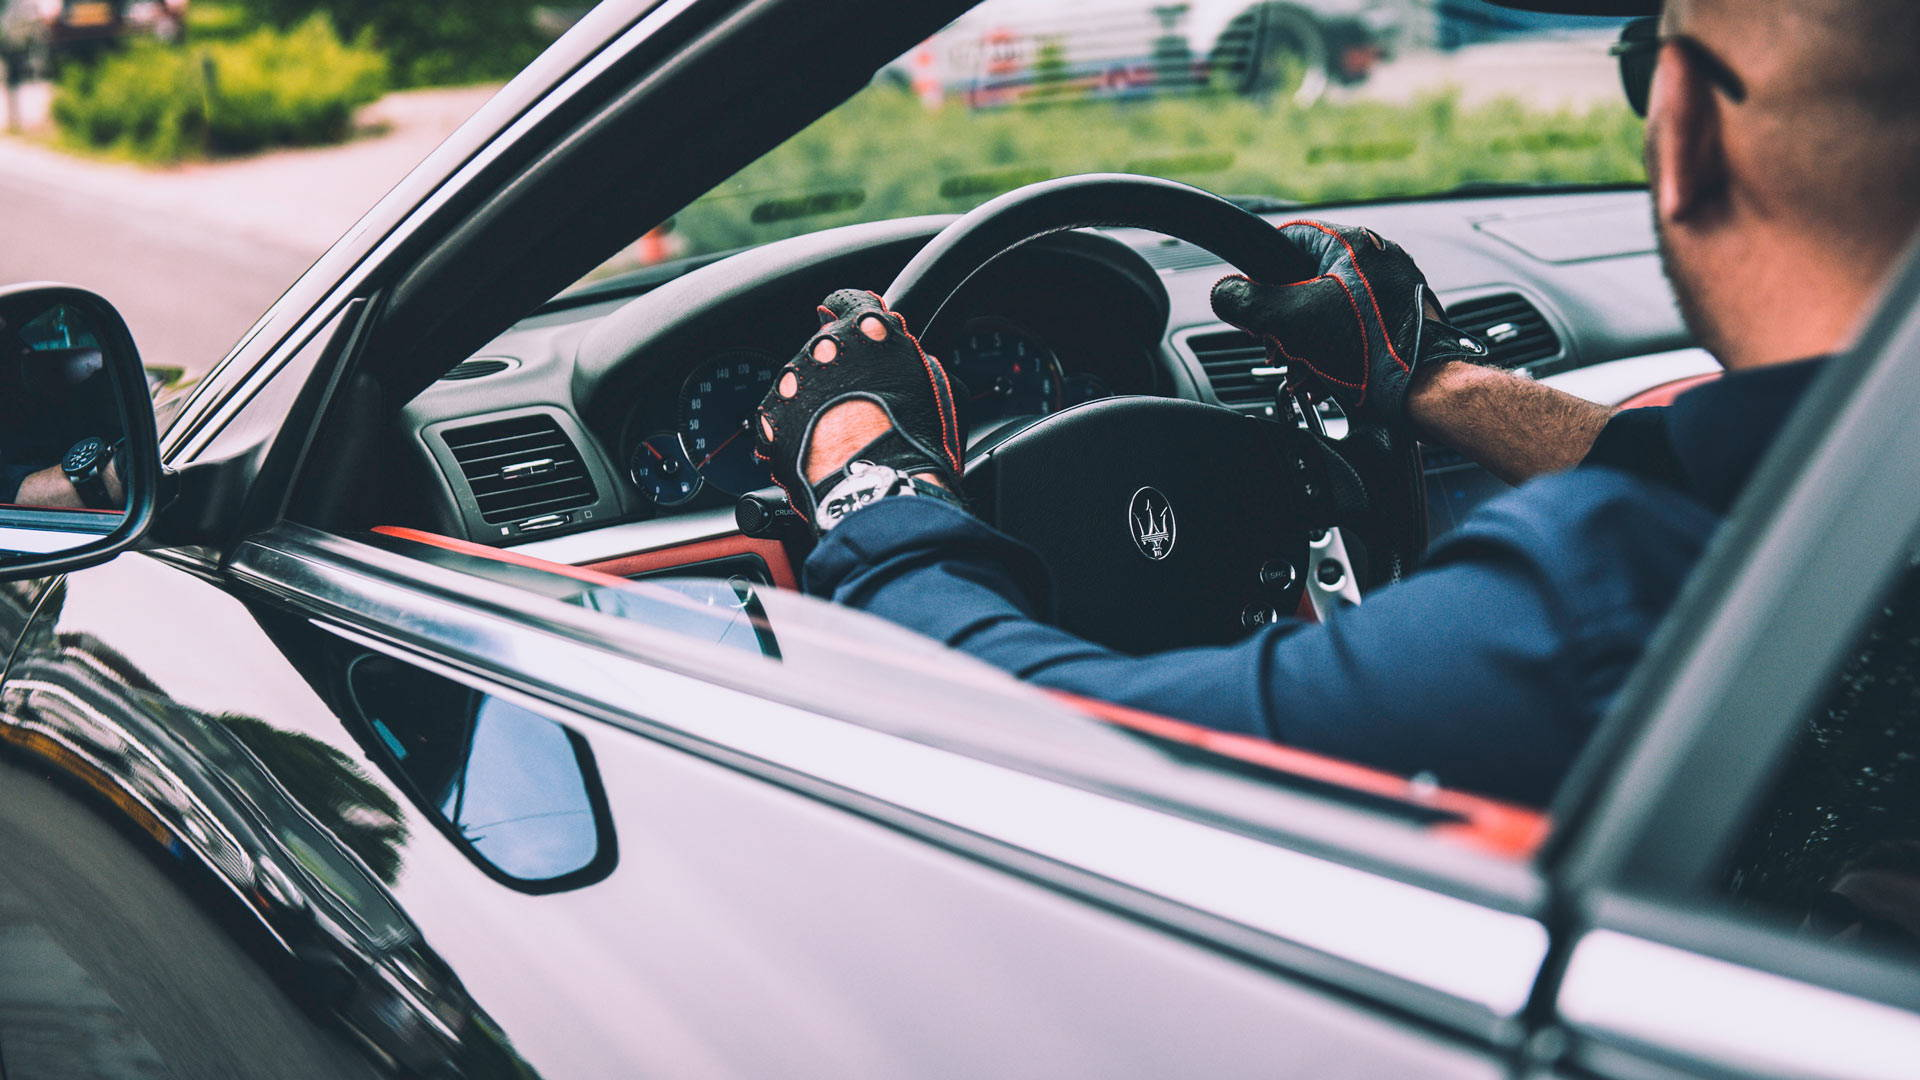 Driving gloves Maserati